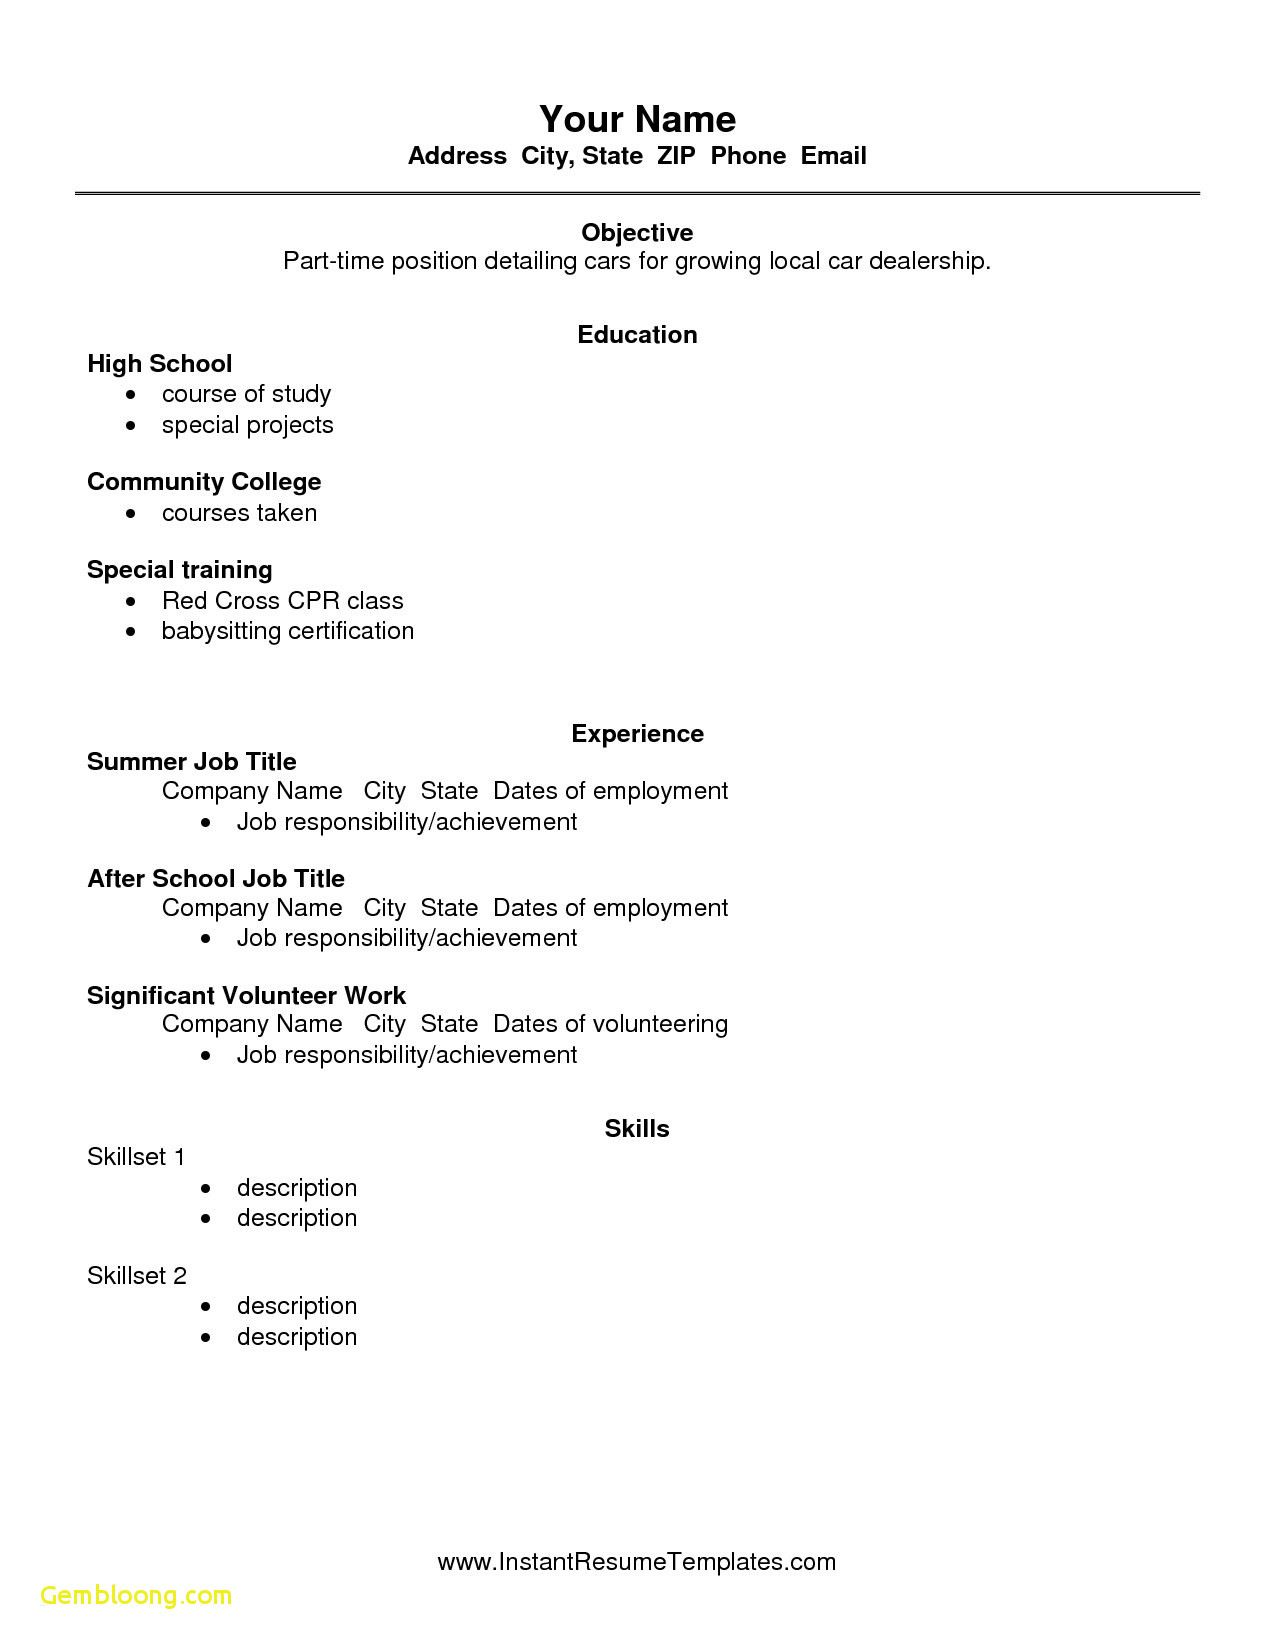 free resume templates high school students examples student template first job sample for Resume Sample Resume For High School Student Applying For A Job